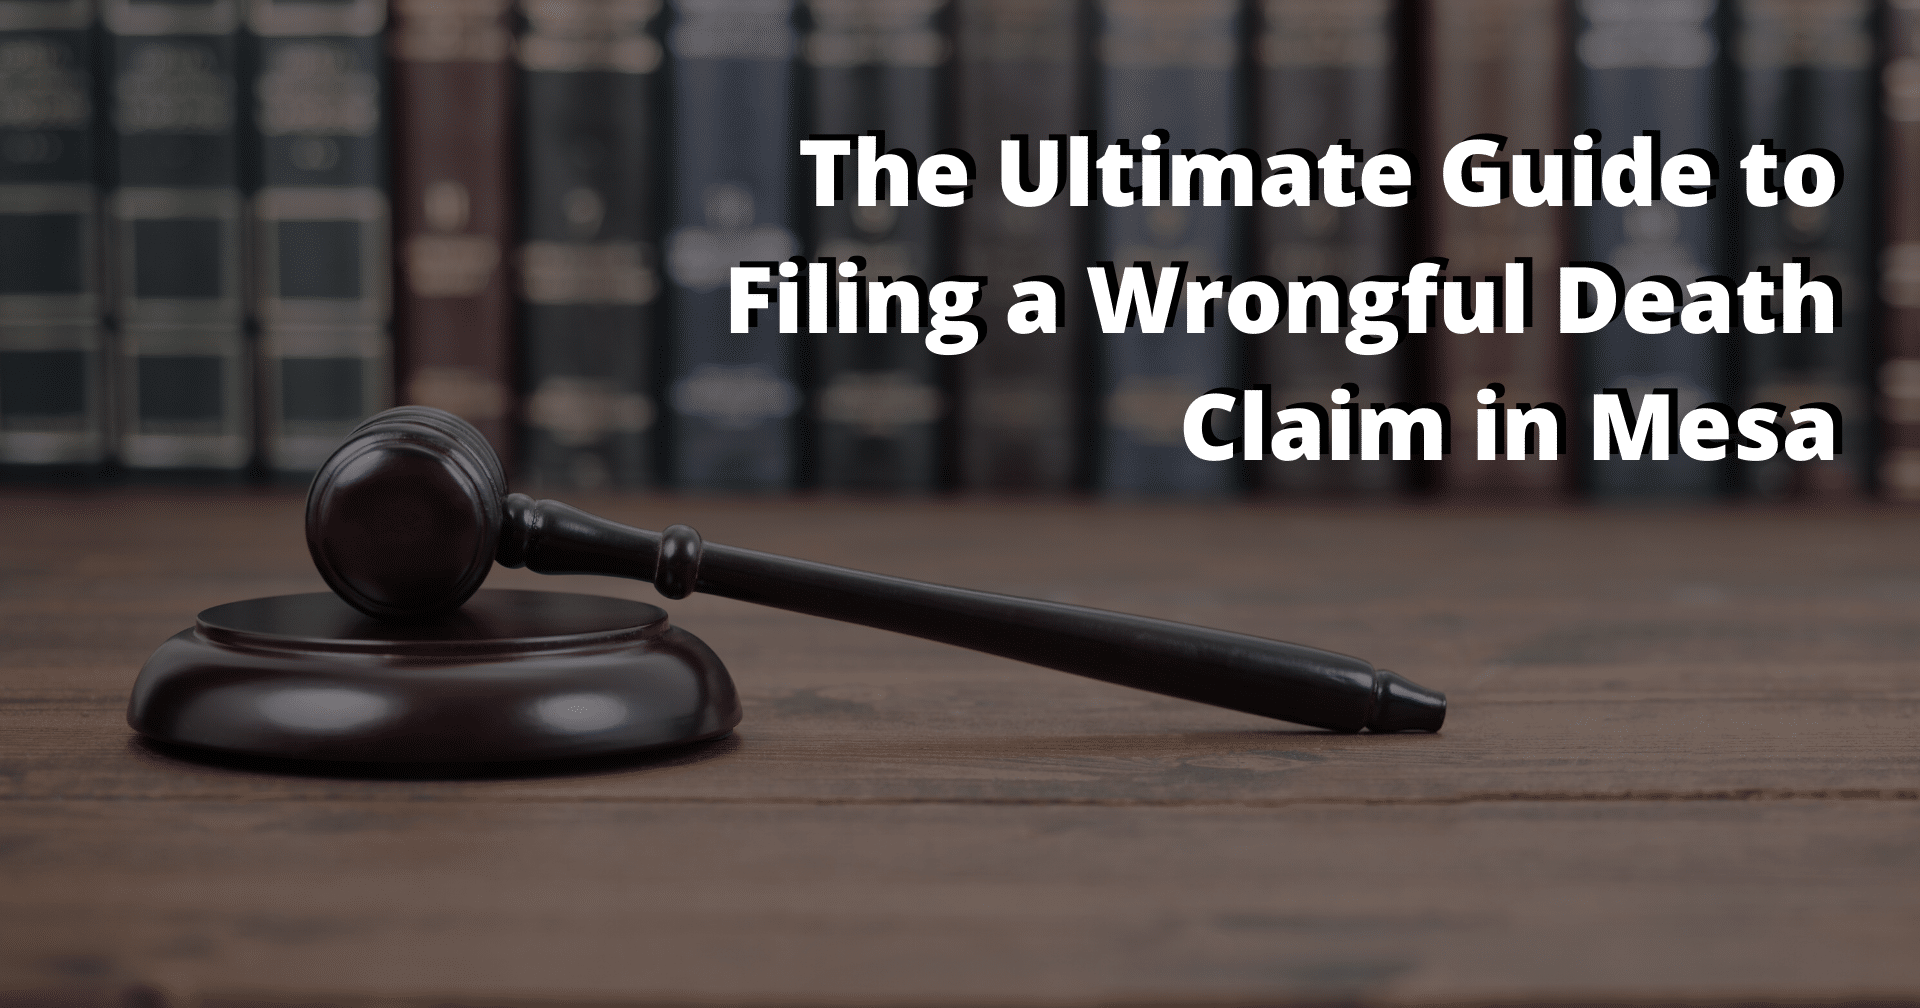 The Ultimate Guide to Filing a Wrongful Death Claim in Mesa